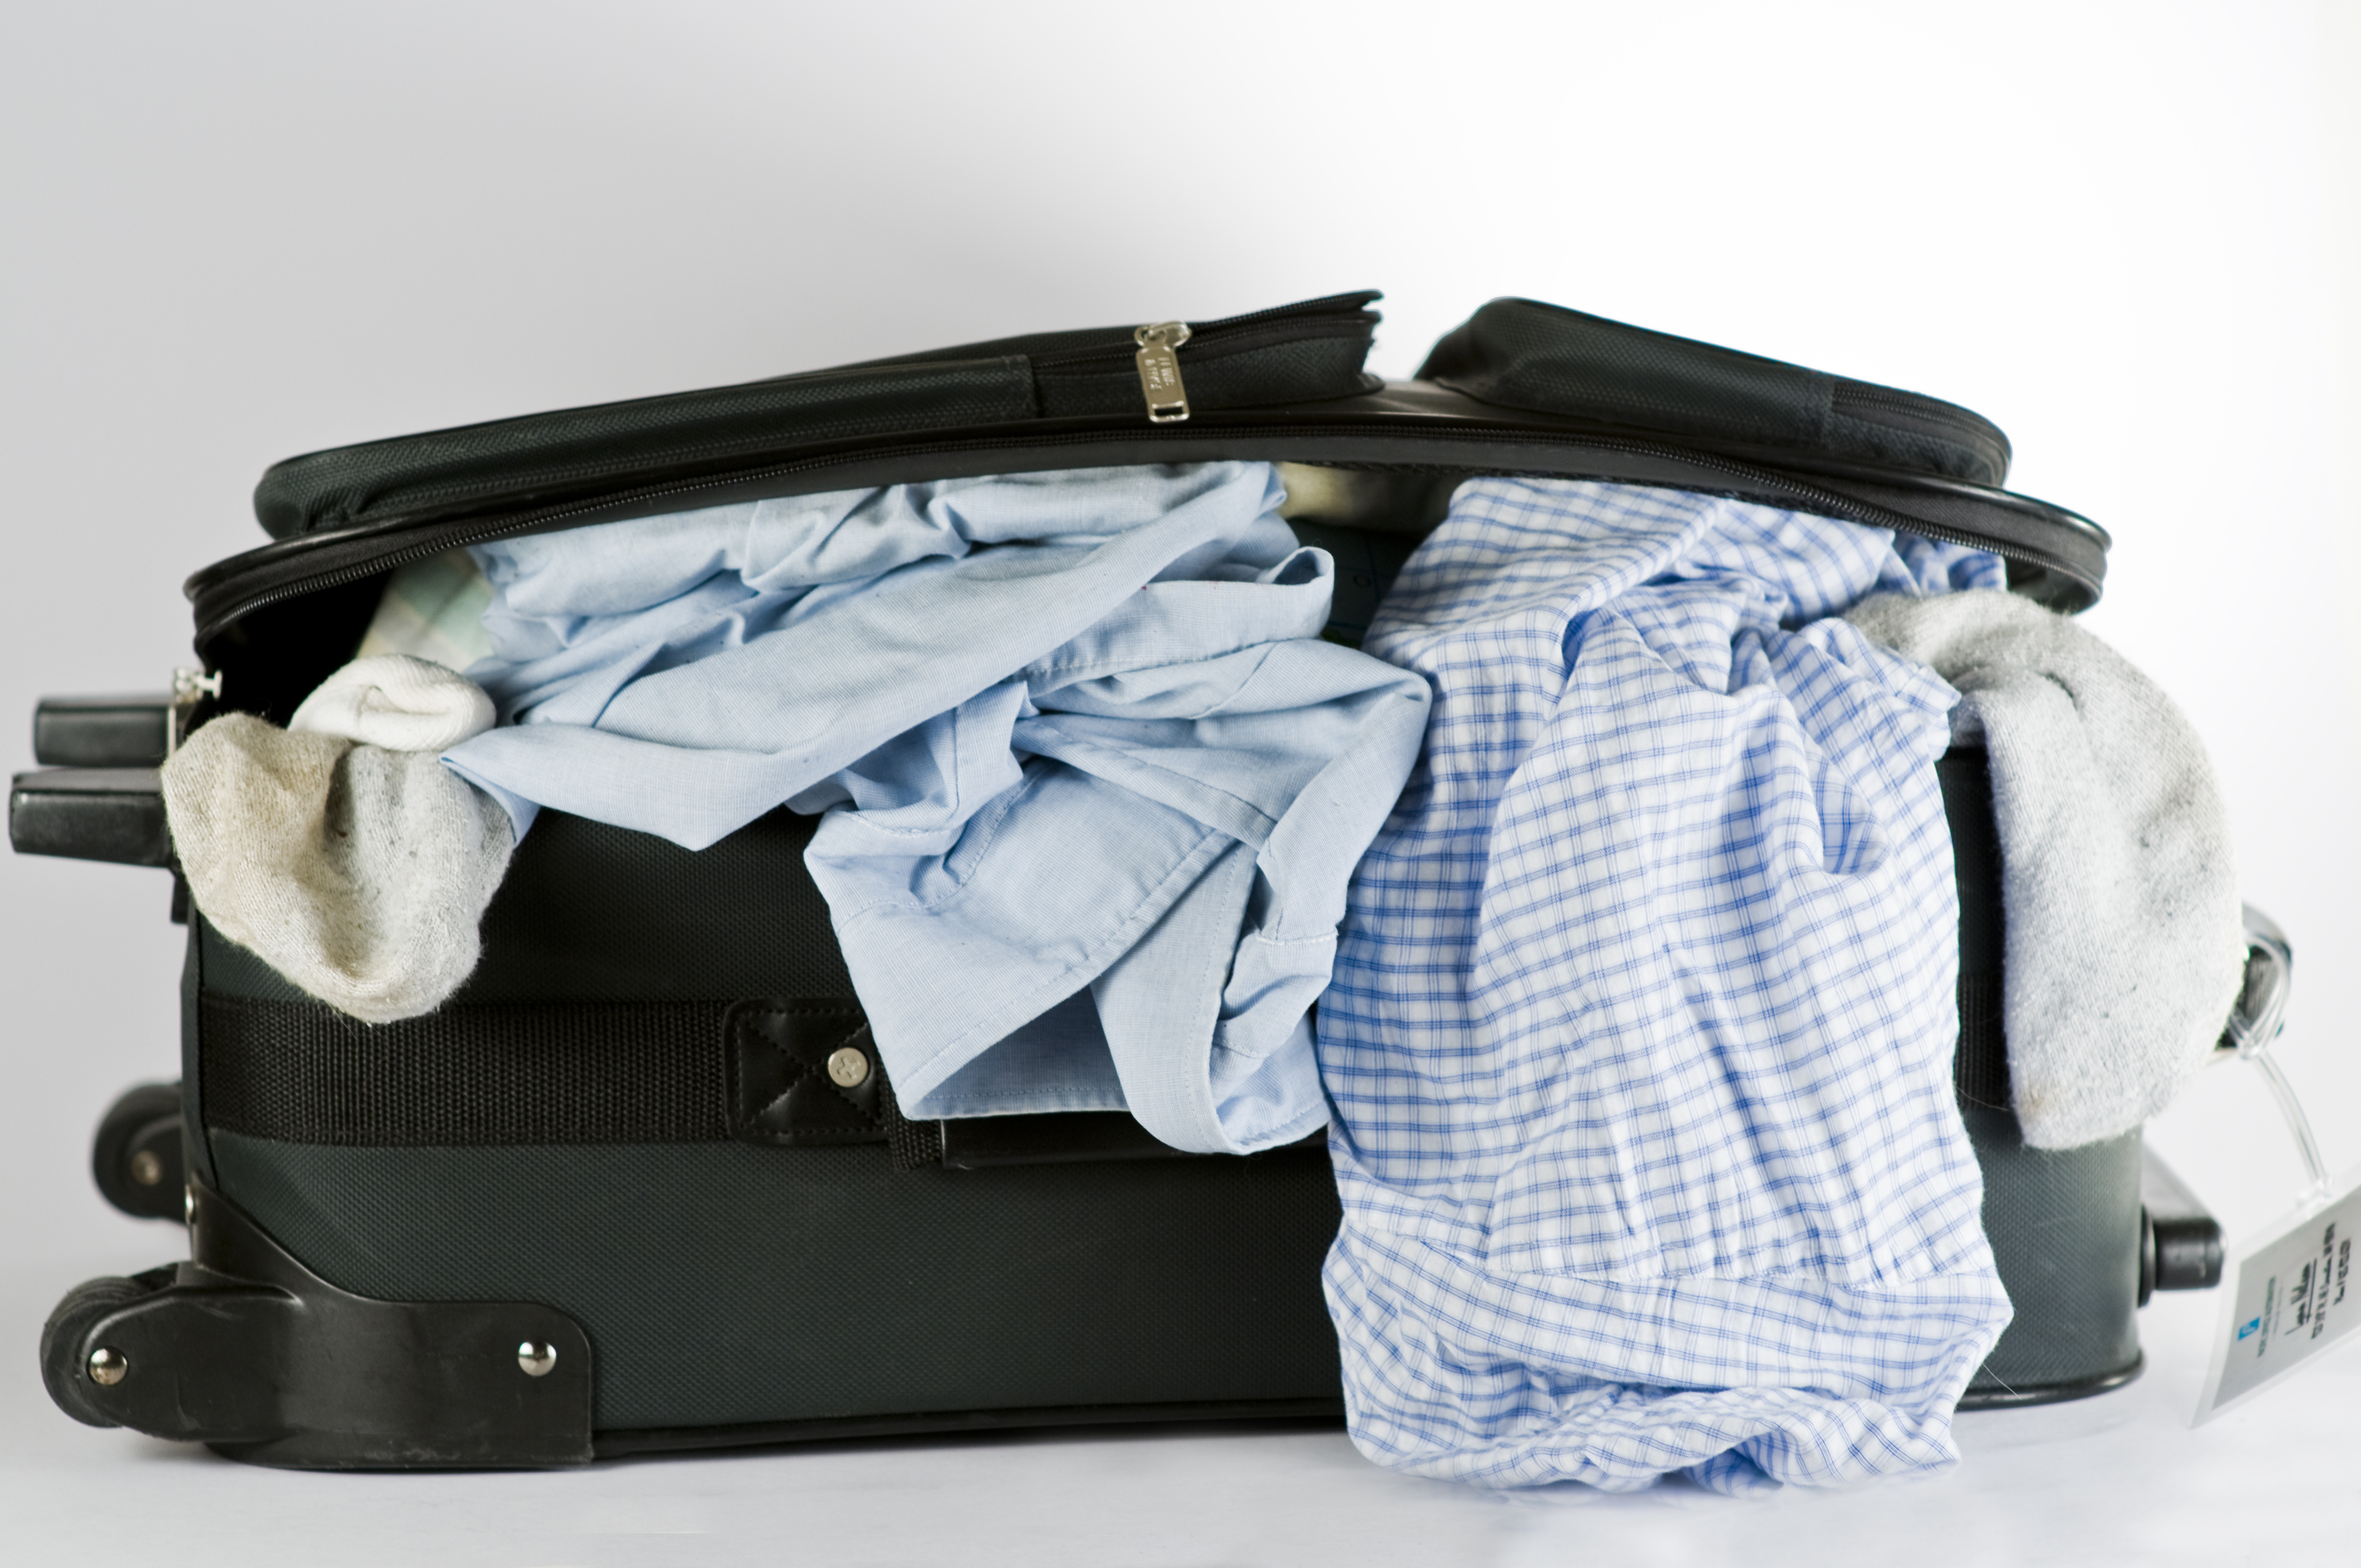 stuffed suitcase3a 6 Ways to Save Money While Traveling